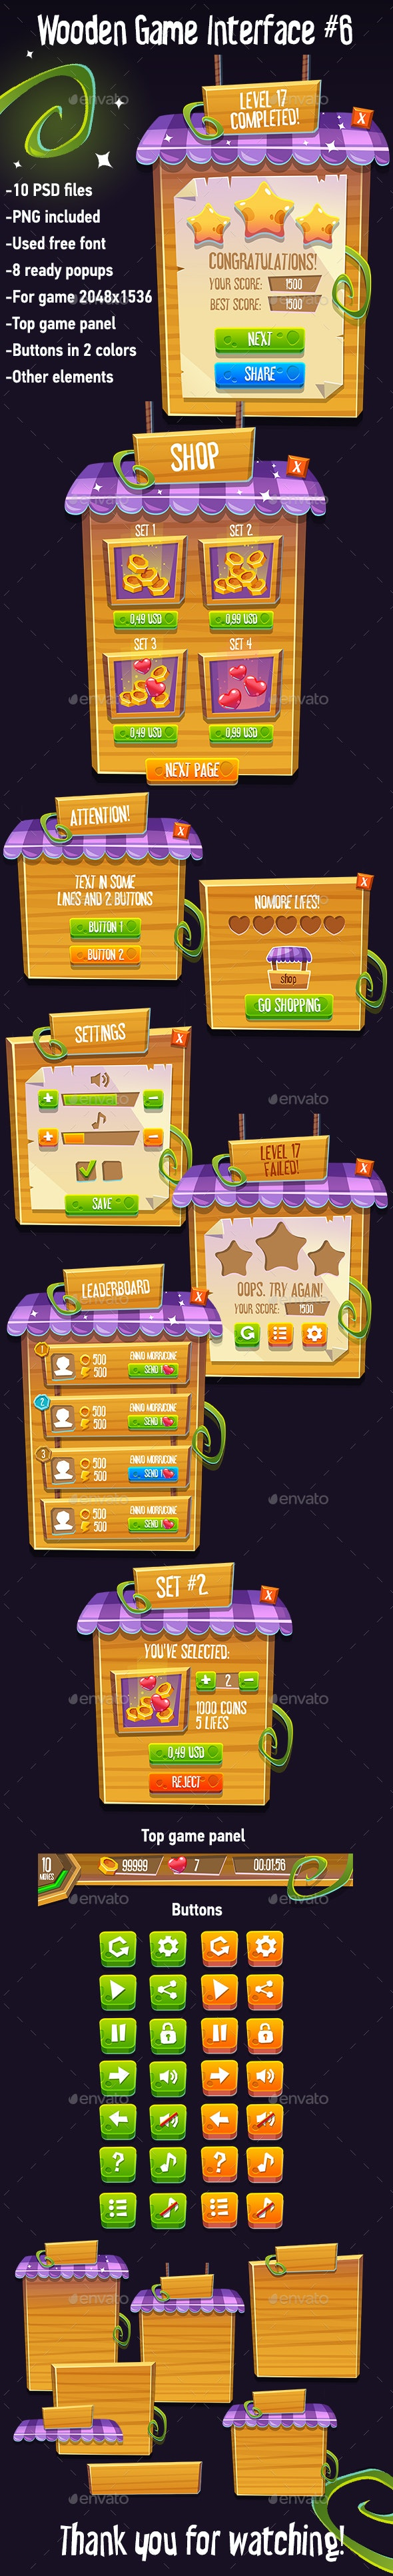 Wooden Game Interface #6 - User Interfaces Game Assets